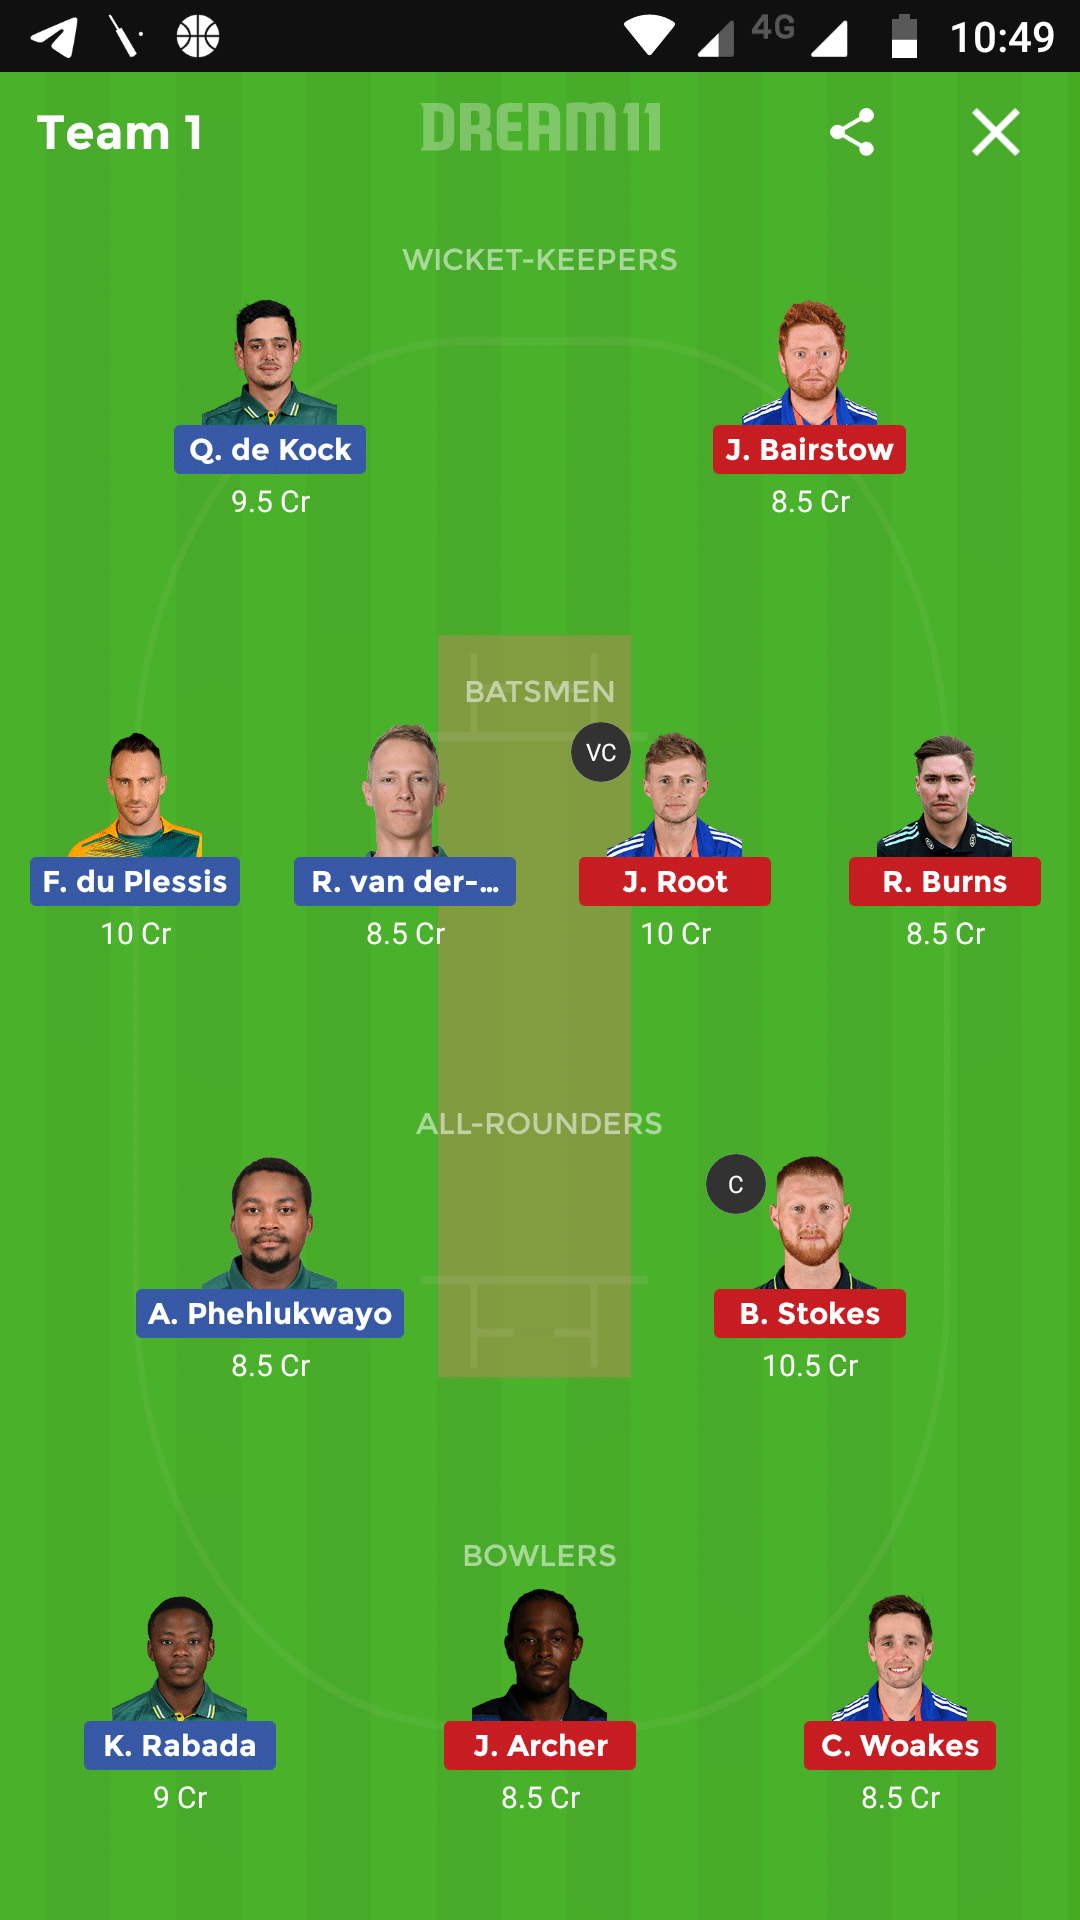 South Africa vs England 1st Test Dream11